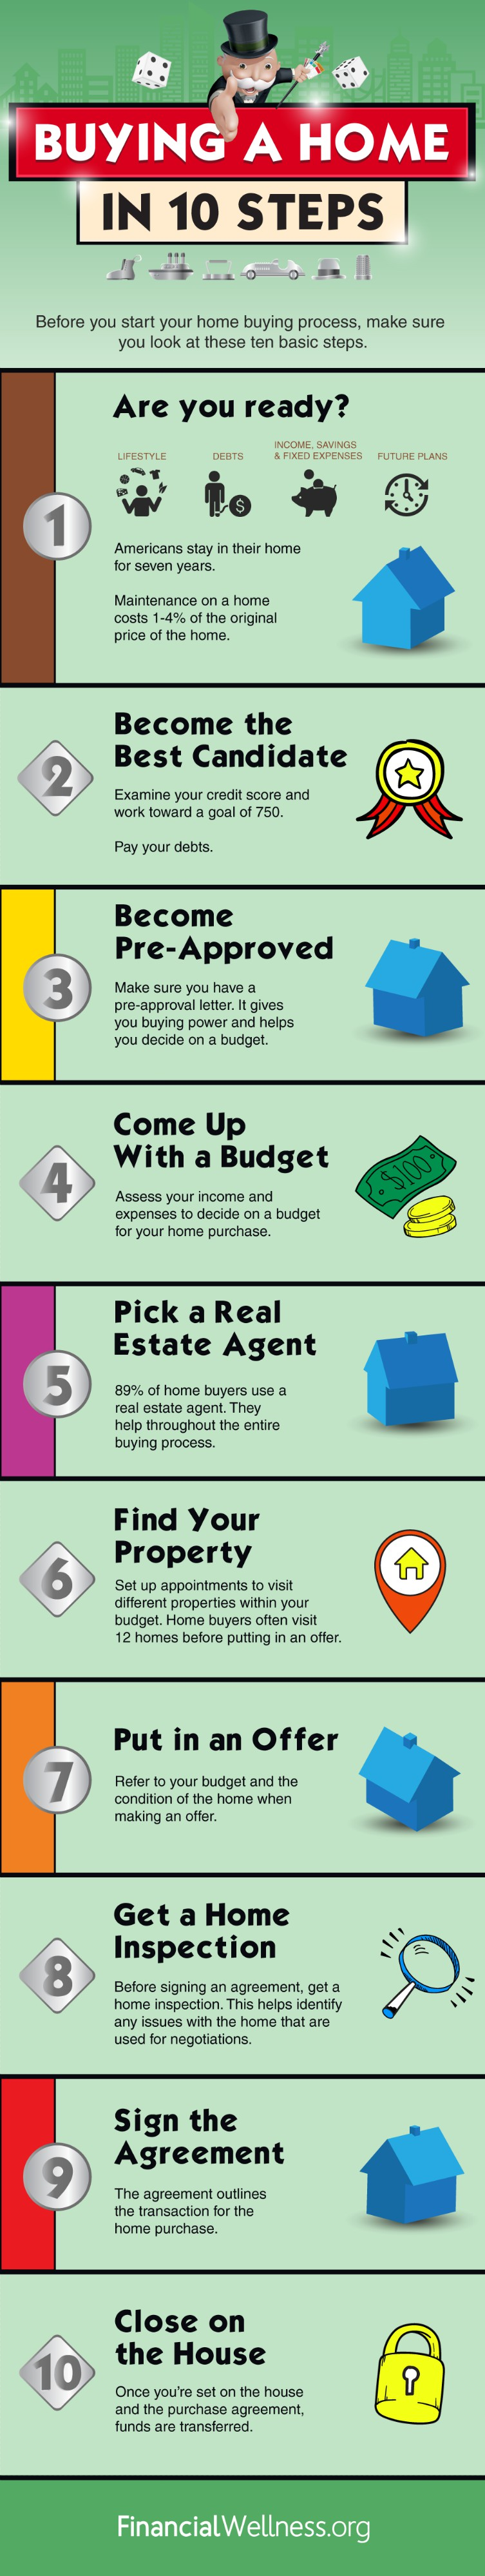 Buying A Home In 10 Steps | Home Ownership Guide